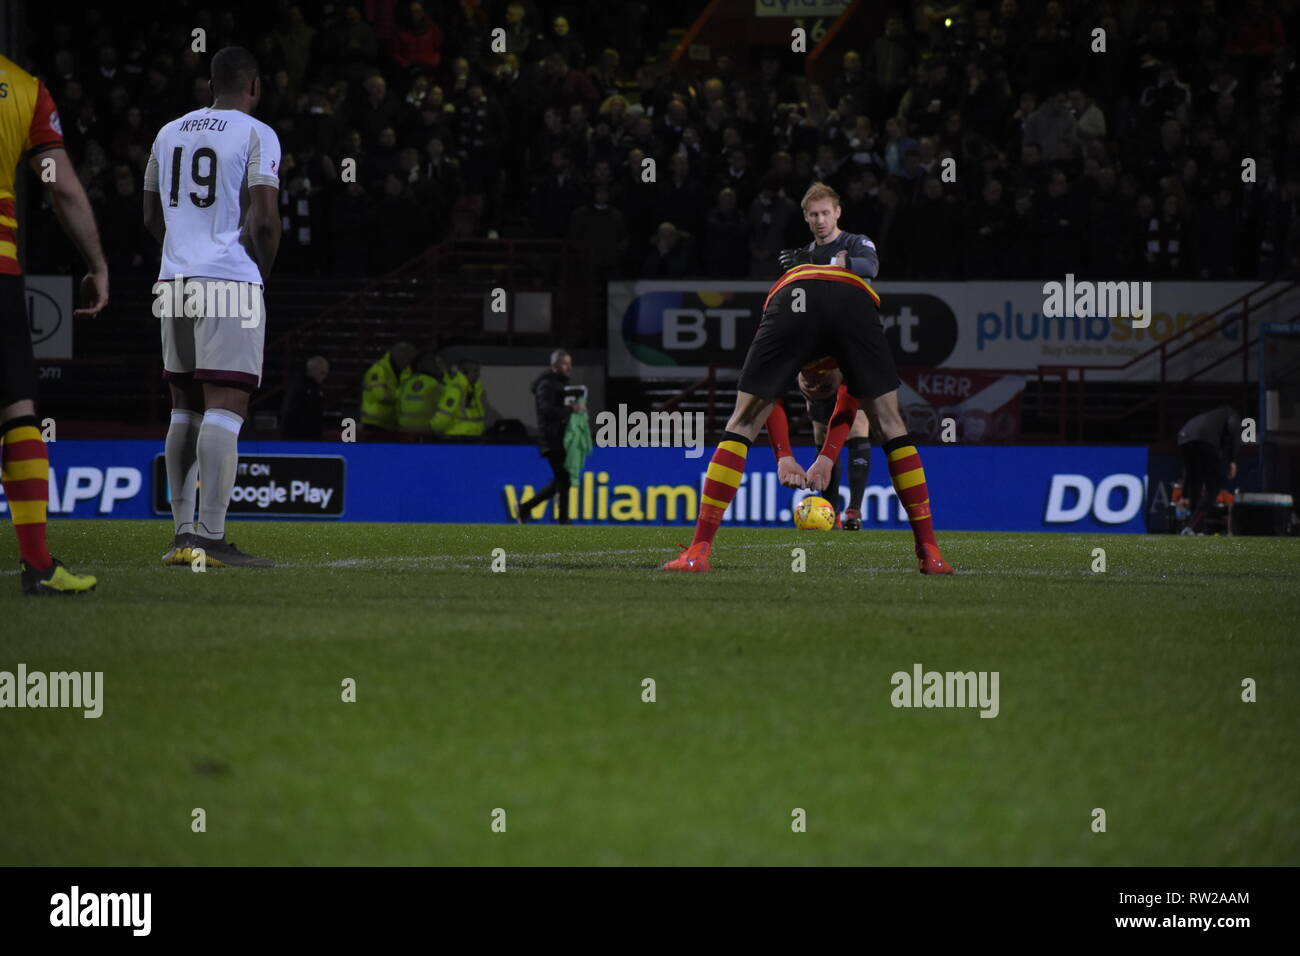 firhill, Maryhill, Glasgow, Scotland 4th march 2019 Partick Thistle take centre at the centre spot credit: Thomas Porter/Alamy News - Stock Image